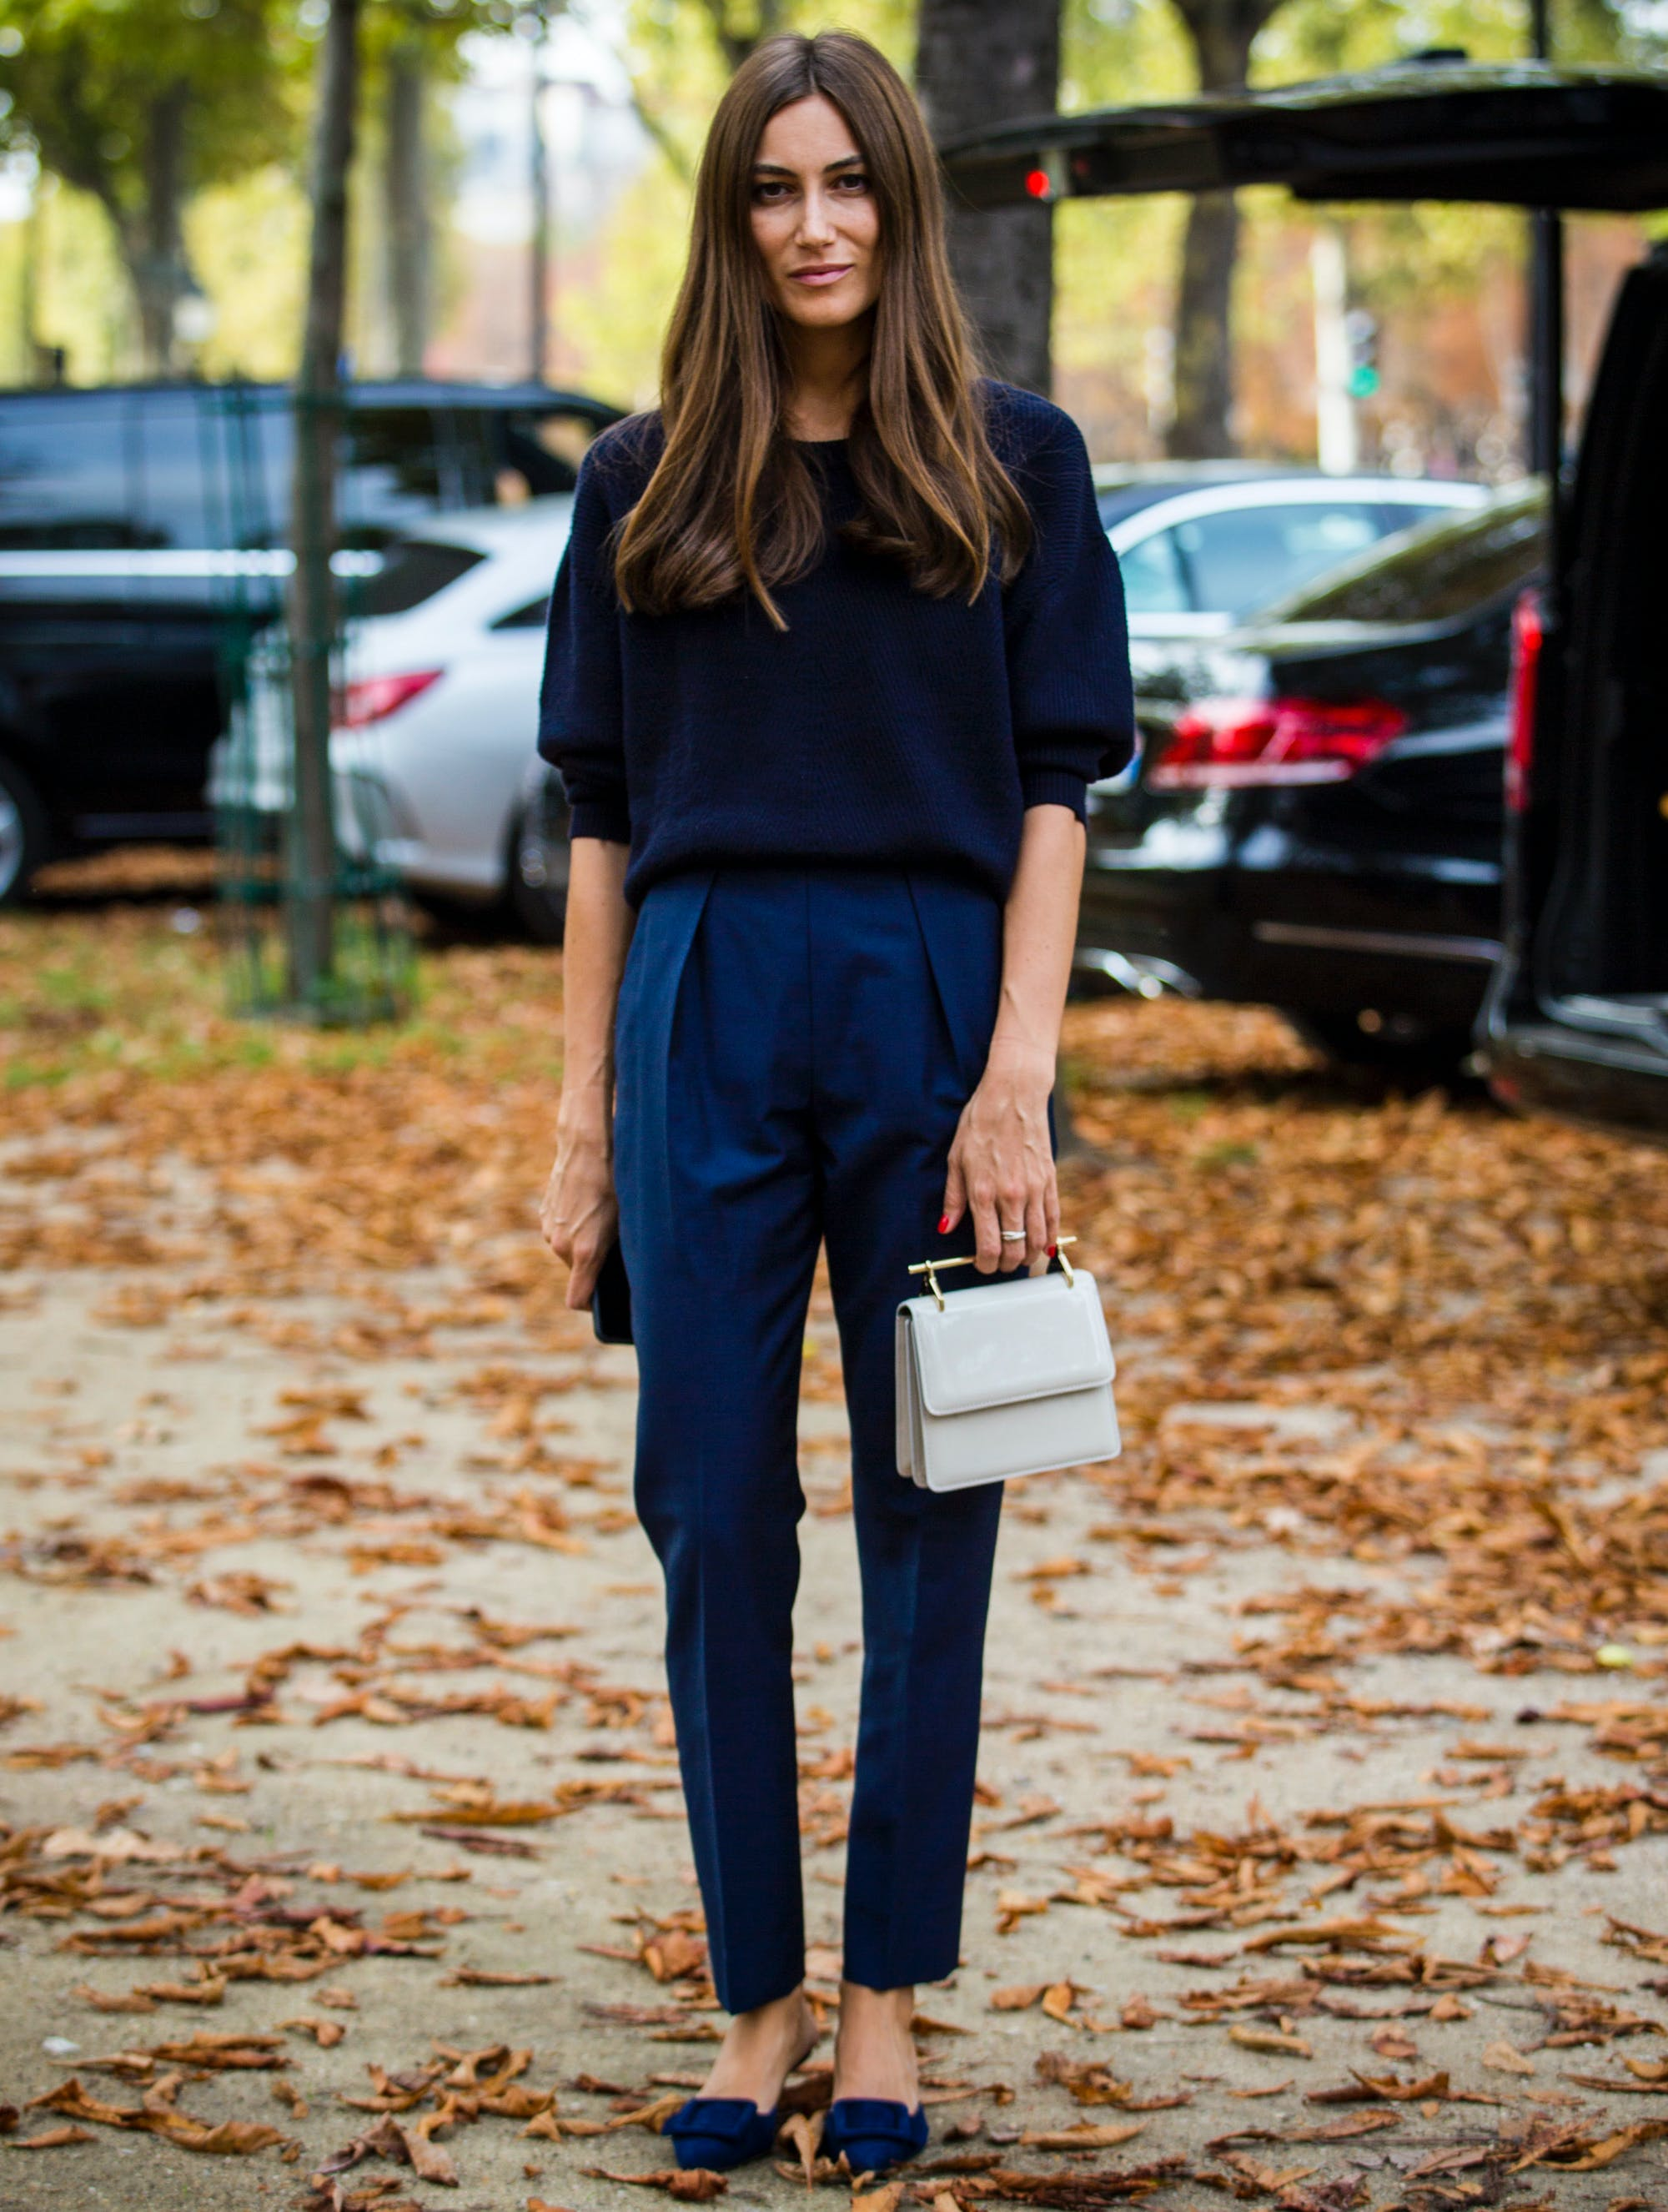 woman wearing all navy